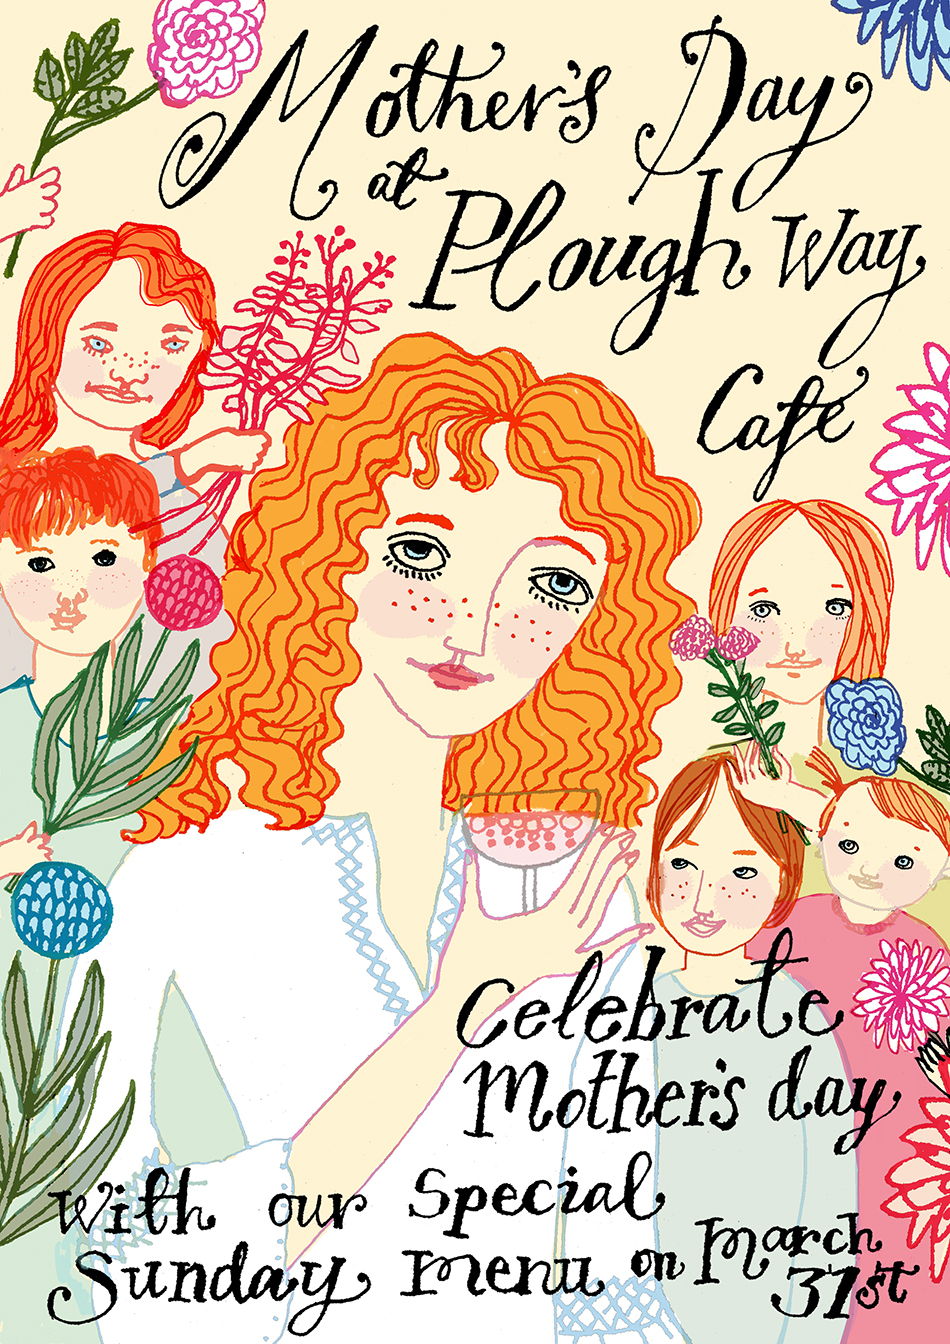 PLOUGH WAY CAFE | Mother's Day Flyer